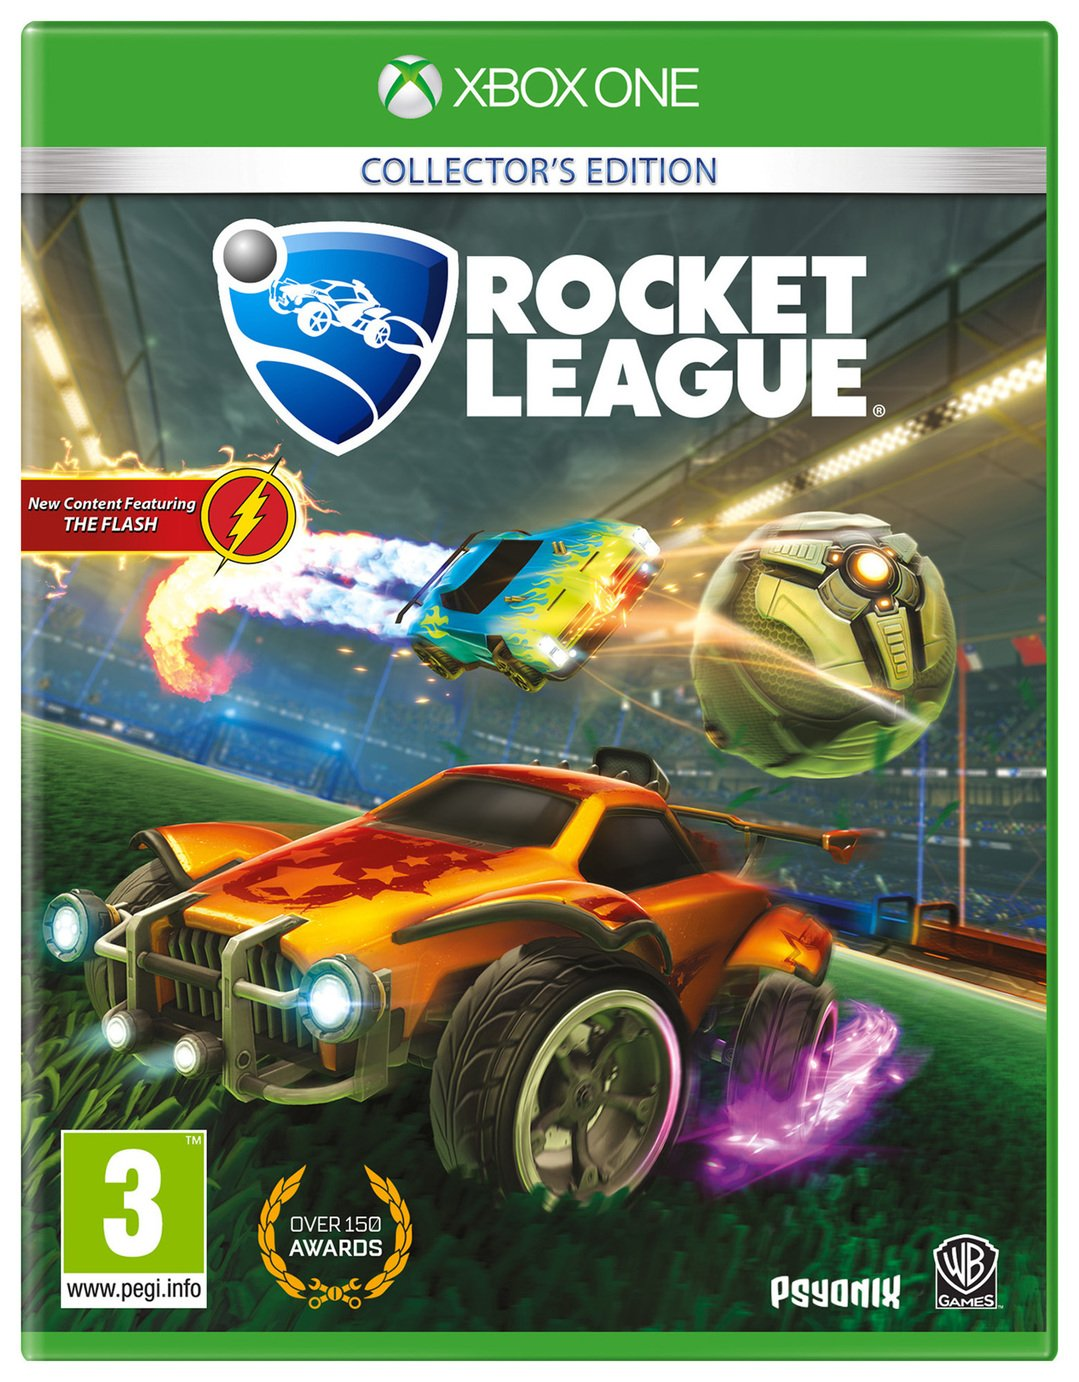 Rocket League Collectors Edition Xbox One Game from Xbox One X Enhanced